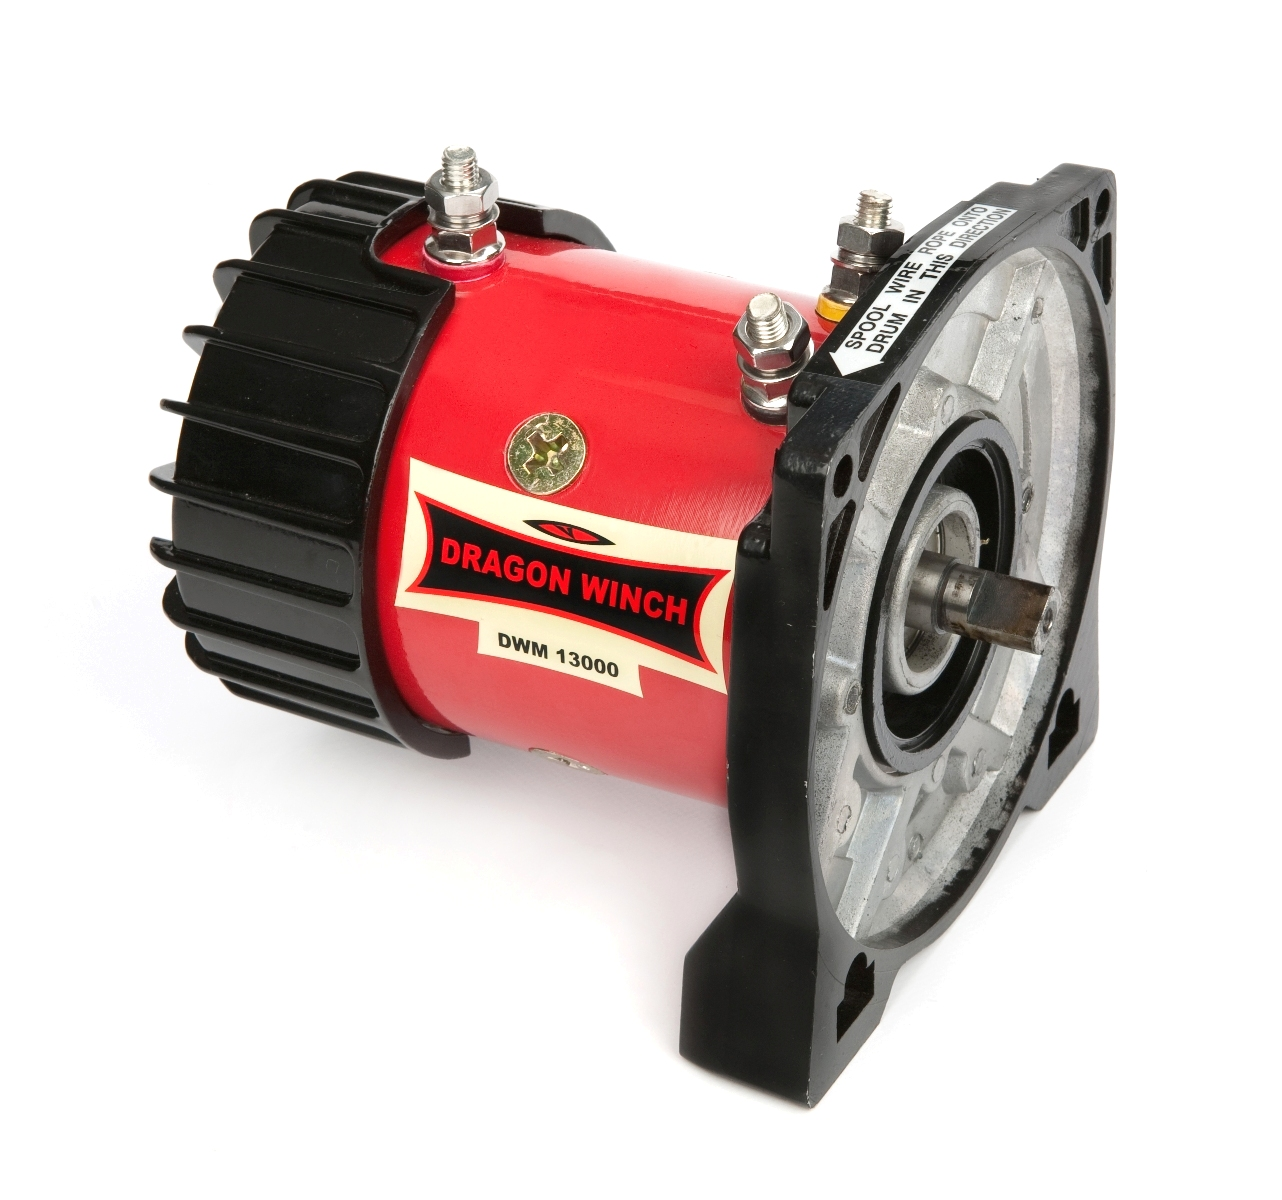 Мотор Dragon Winch DWM 13000